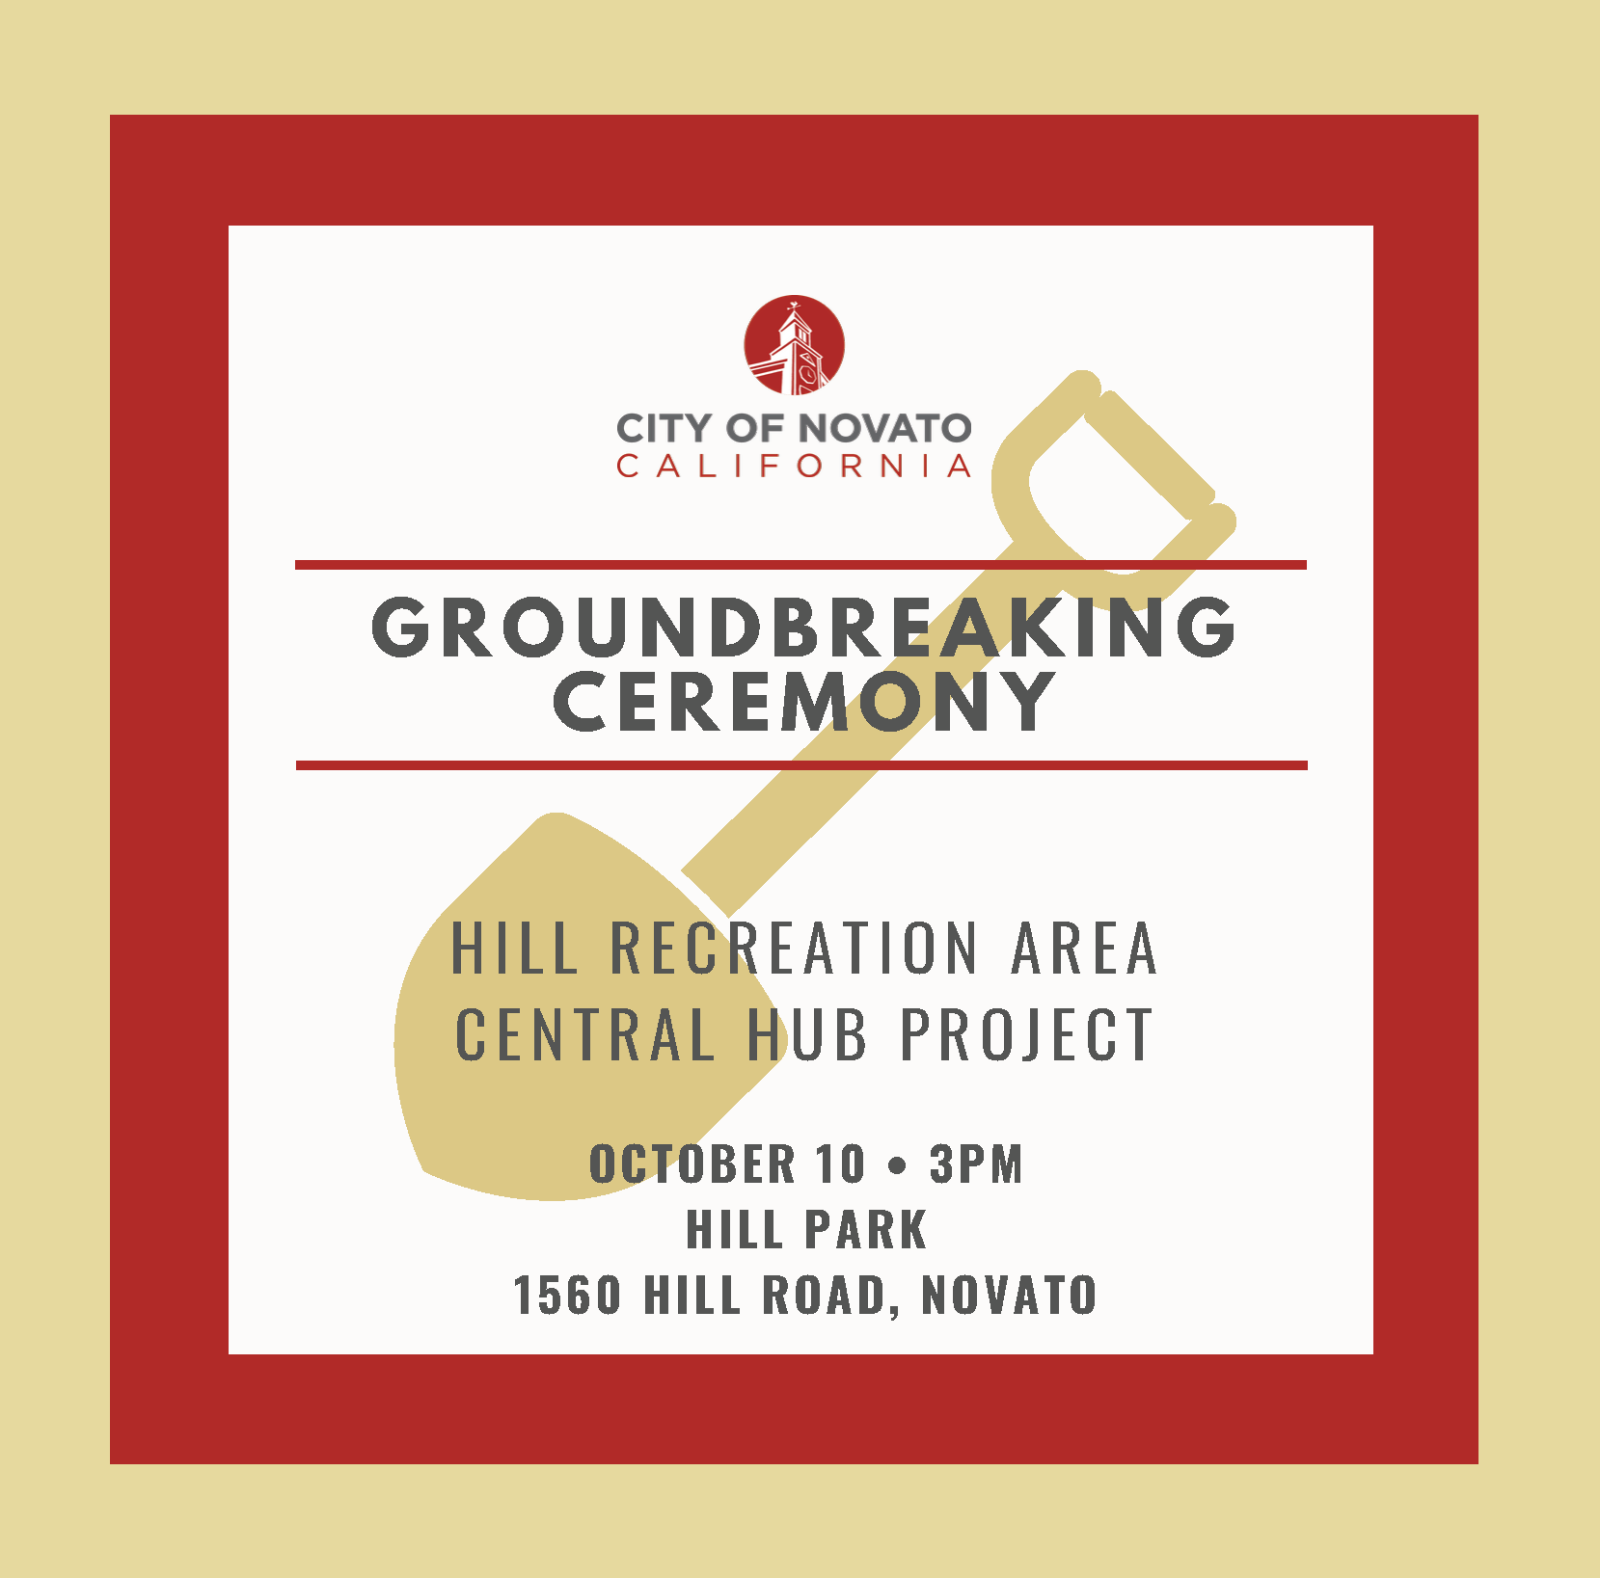 Image of Hill Groundbreaking ceremony announcement